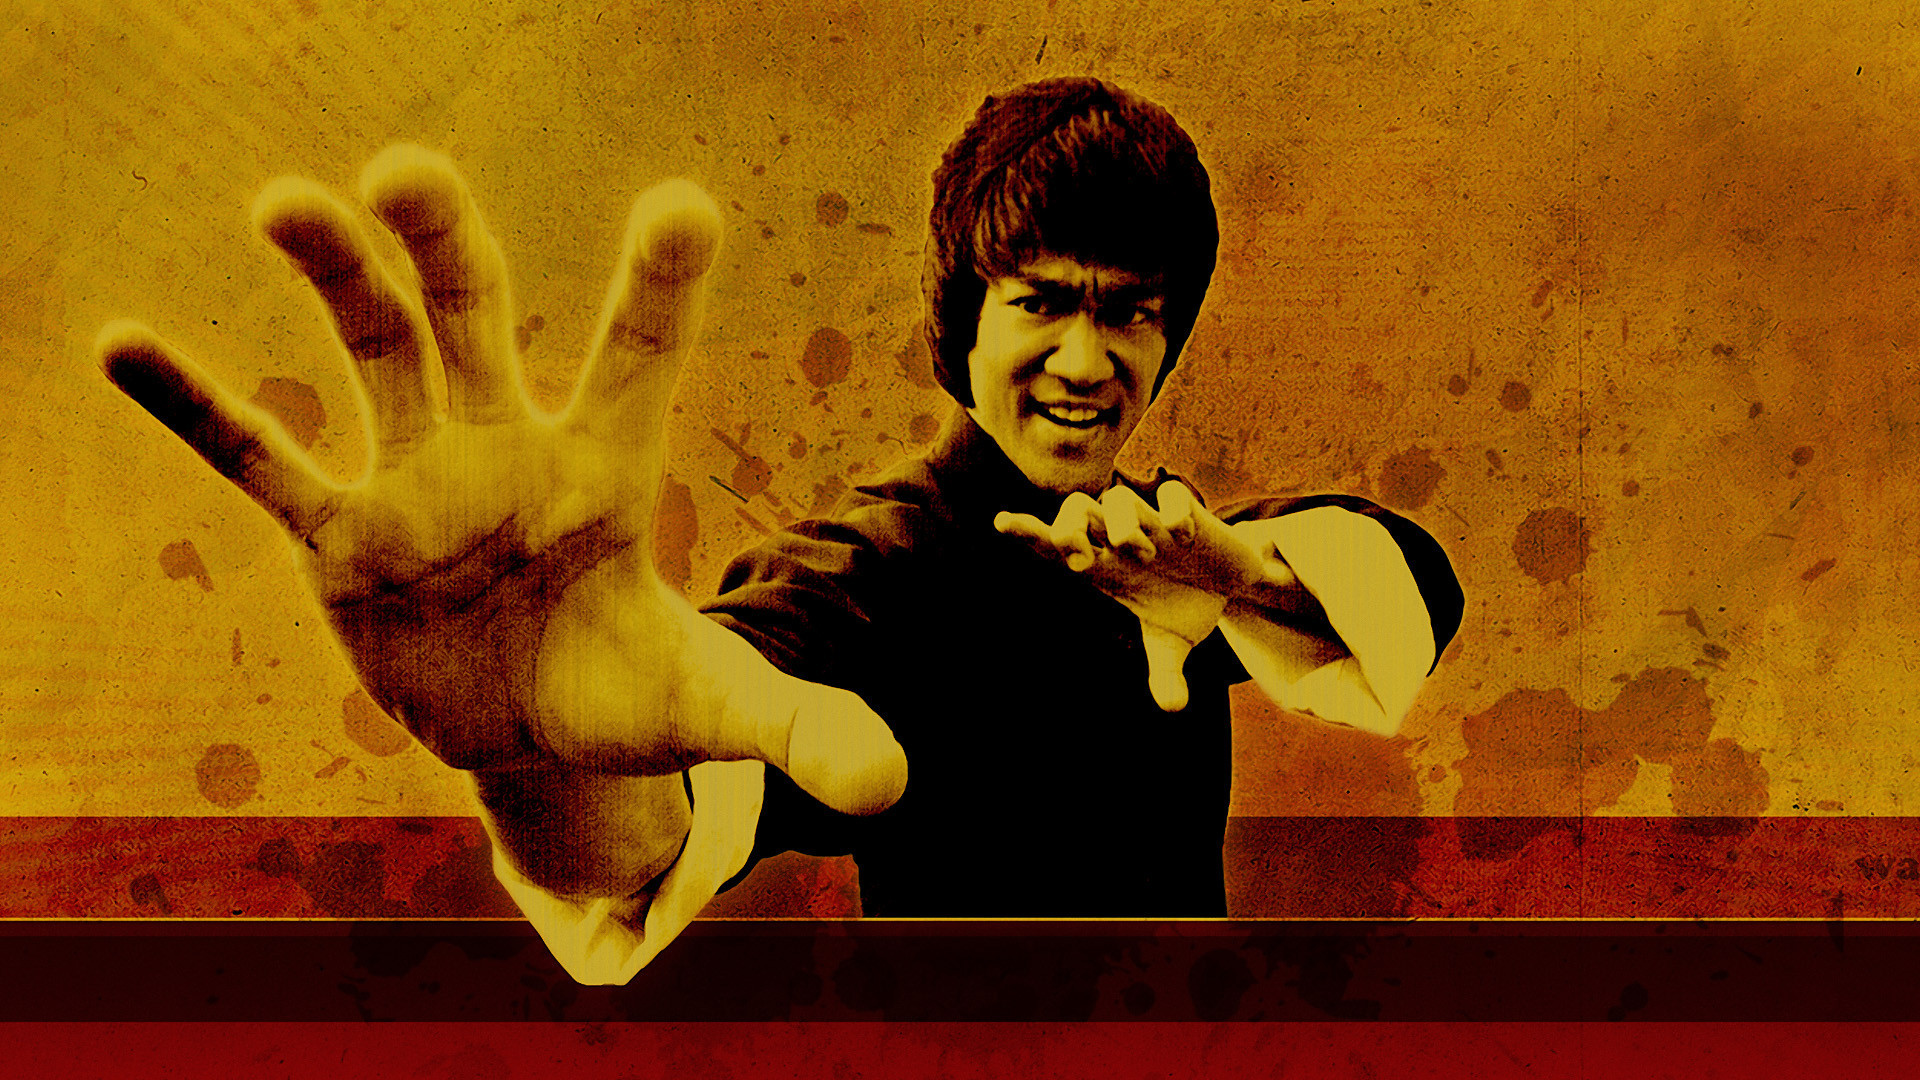 Bruce Lee Wallpaper Enter The Dragon Bruce-lee-wallpaper-enter-the-